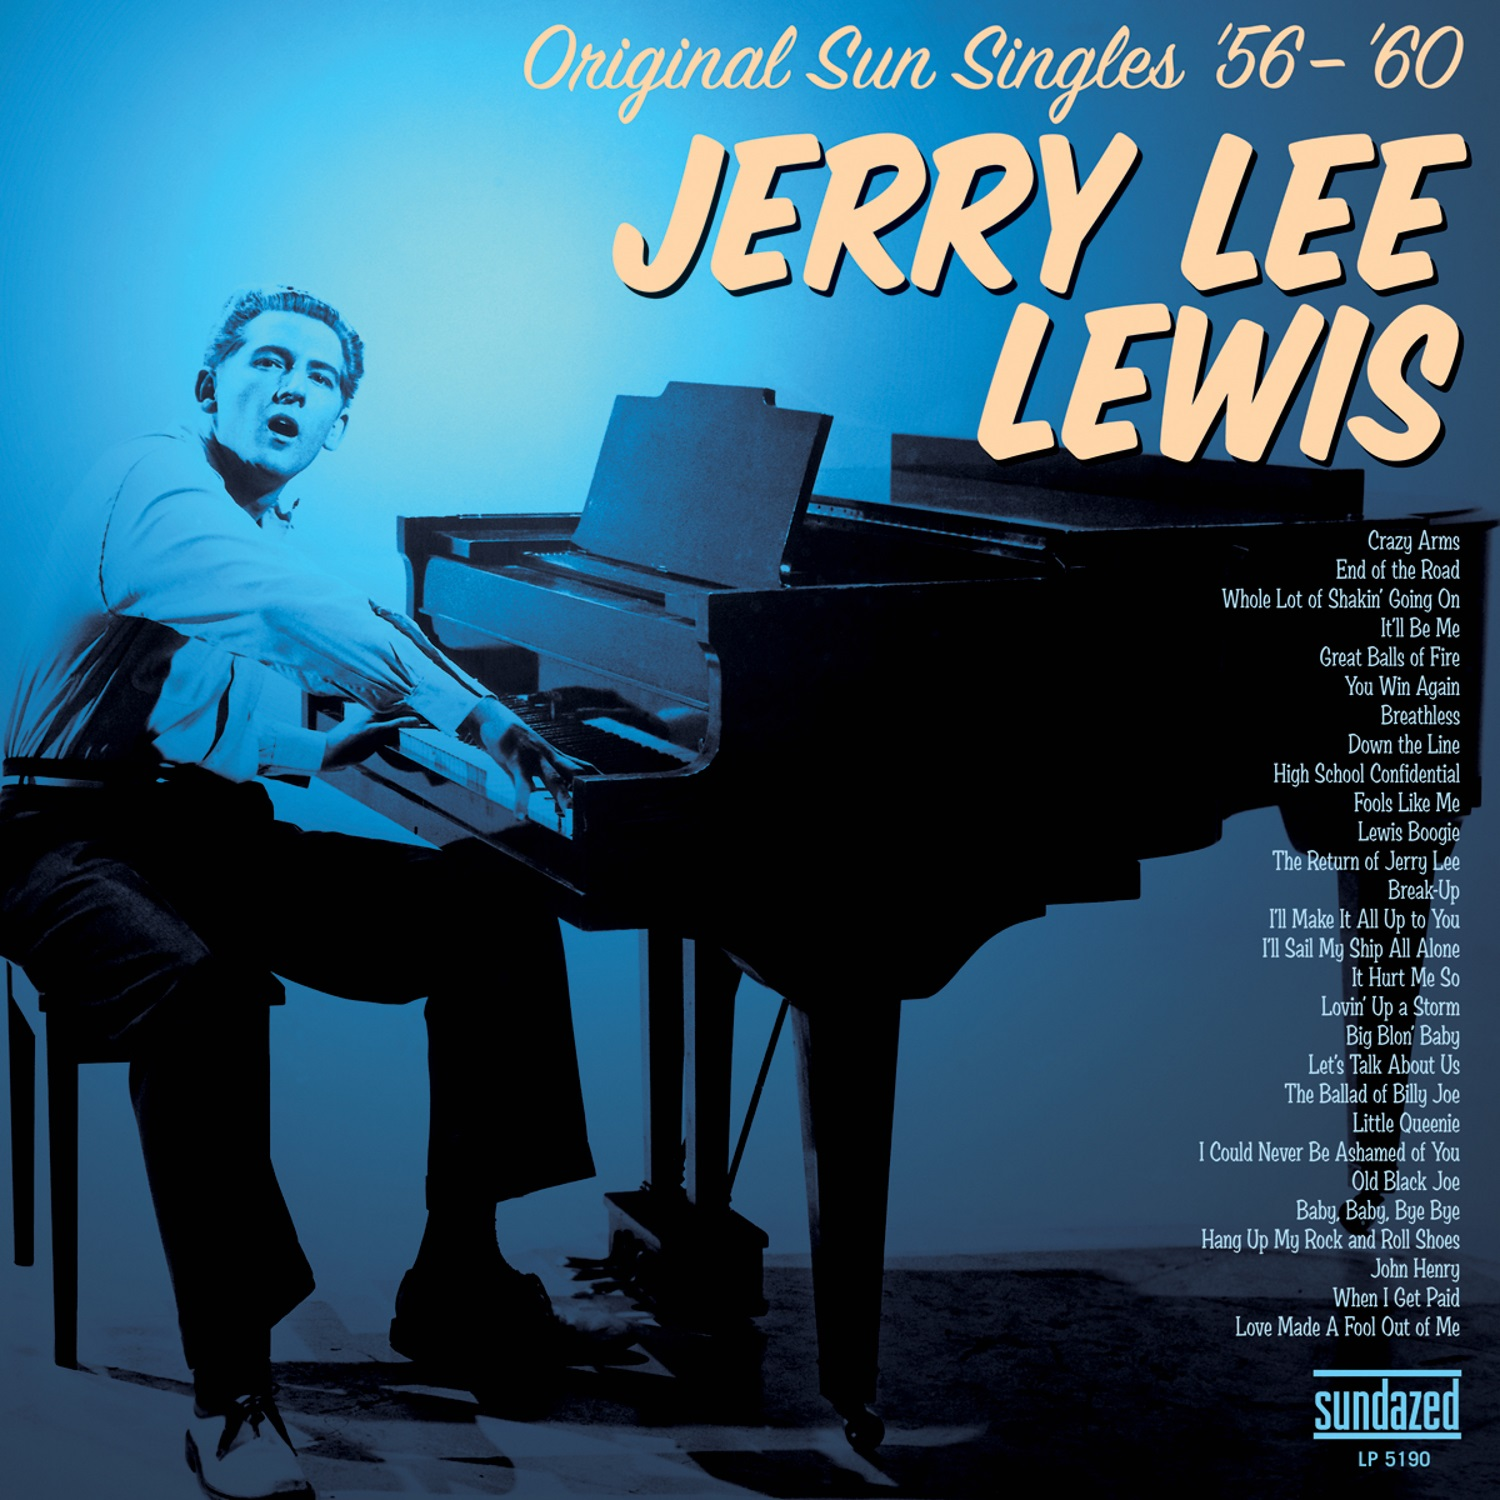 Lewis, Jerry Lee - Original Sun Singles 56 - 60 2-LP Set